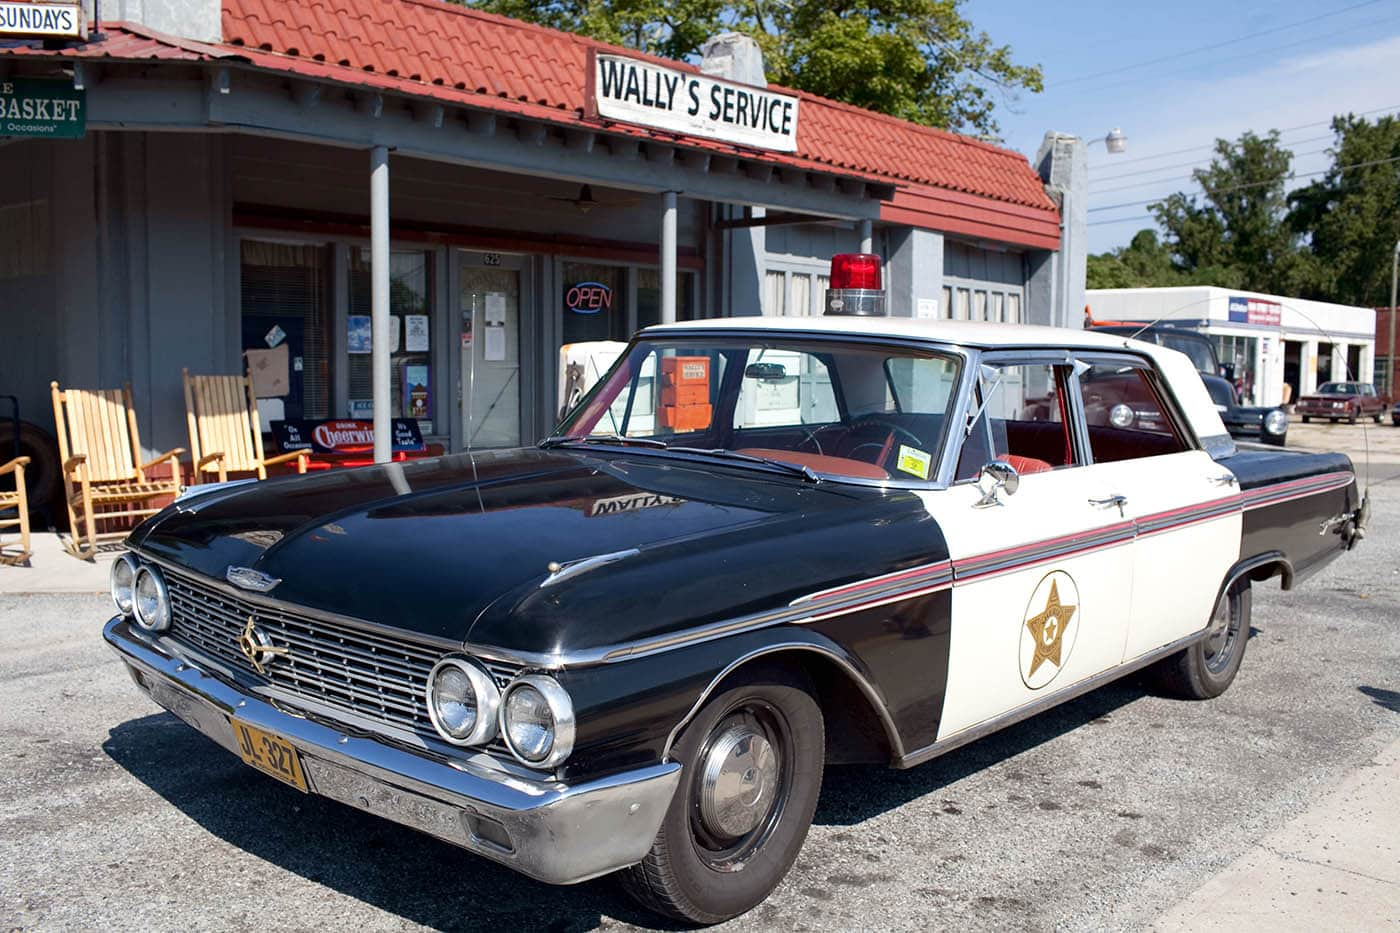 Mount Airy, North Carolina – Home of Mayberry and Andy Griffith